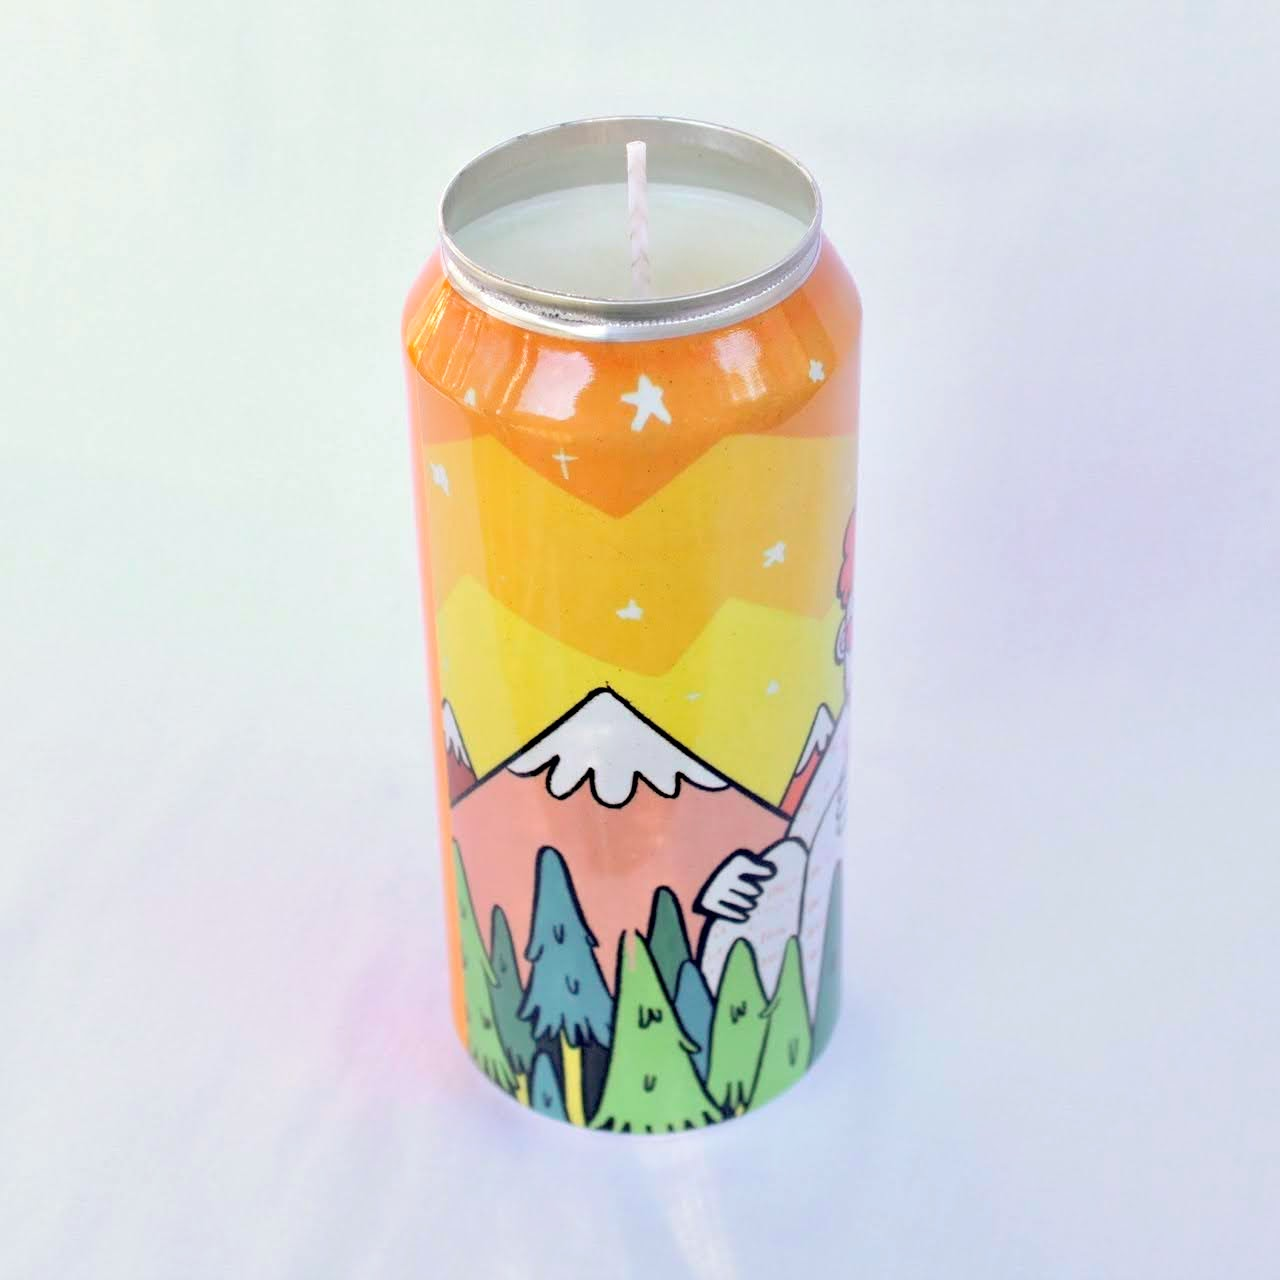 Clown Mountain Candle